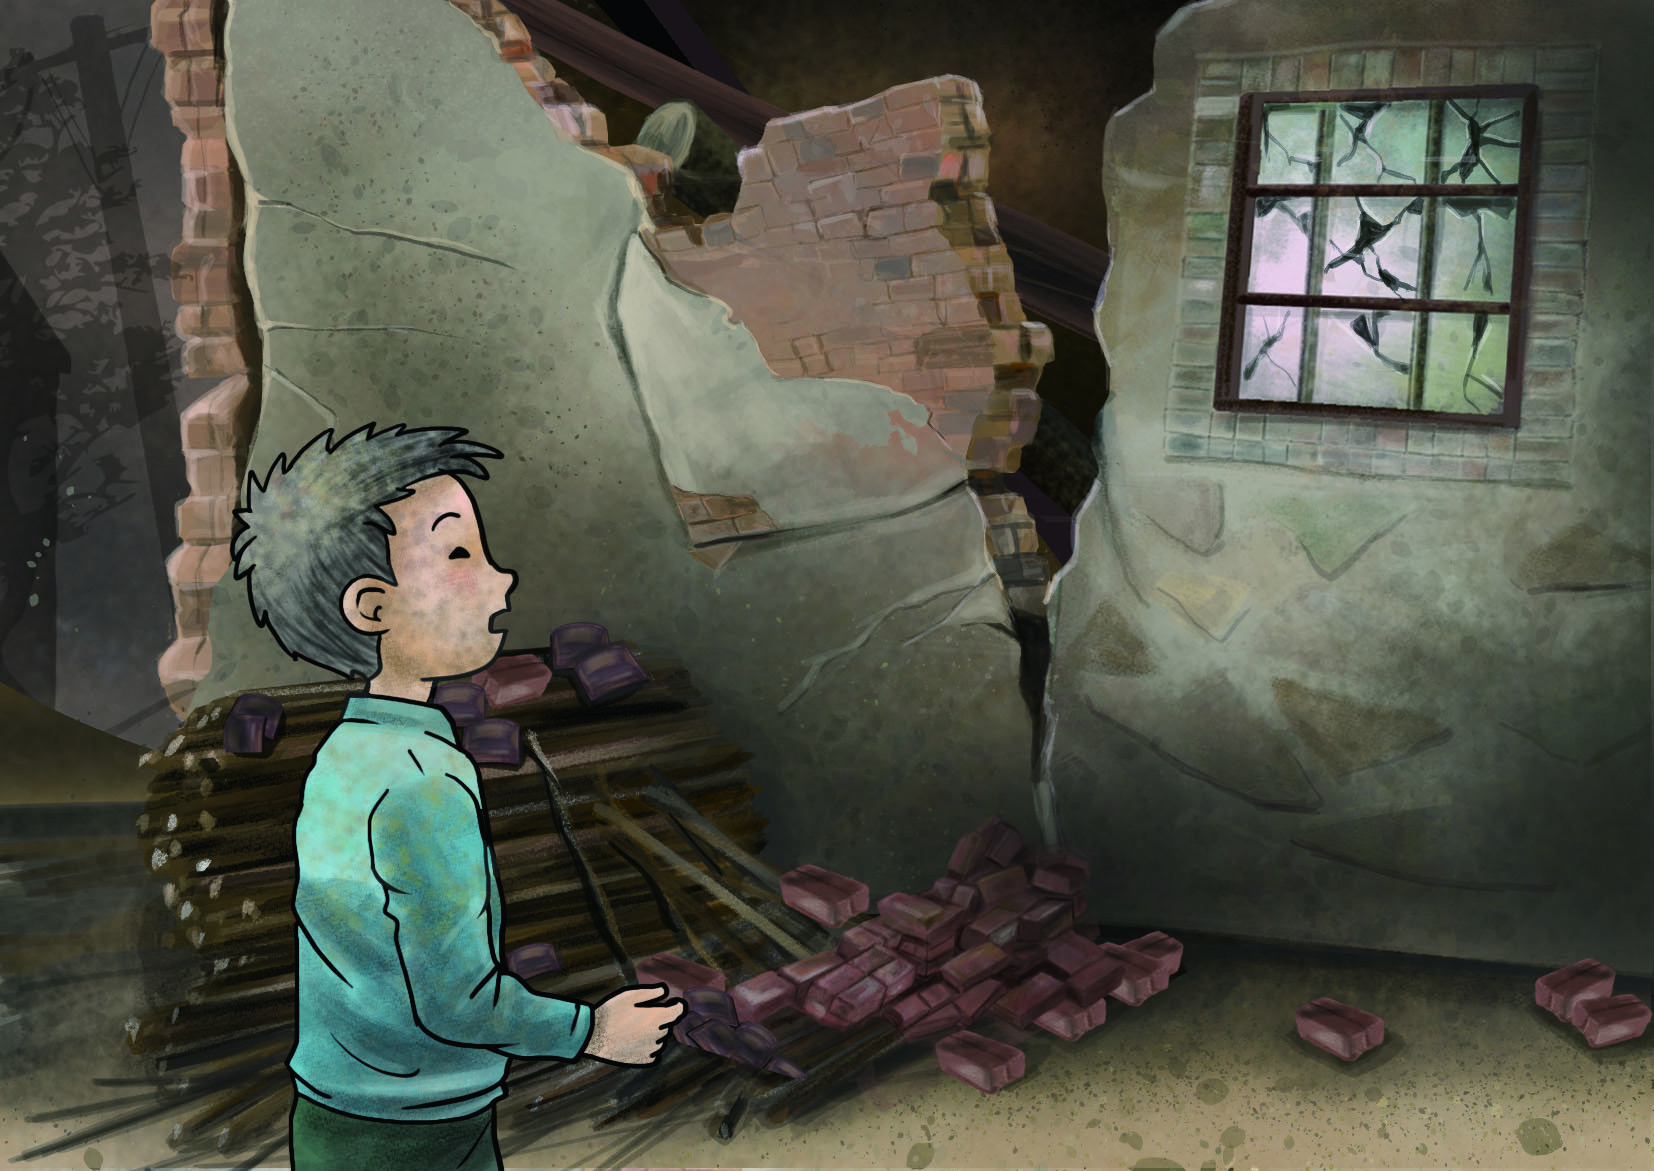 Xiaoshuai finds his house destroyed by an earthquake – an illustration from PAGER-O project's earthquake resilience scenario narrative. Illustrator: Siu Kuen Lai